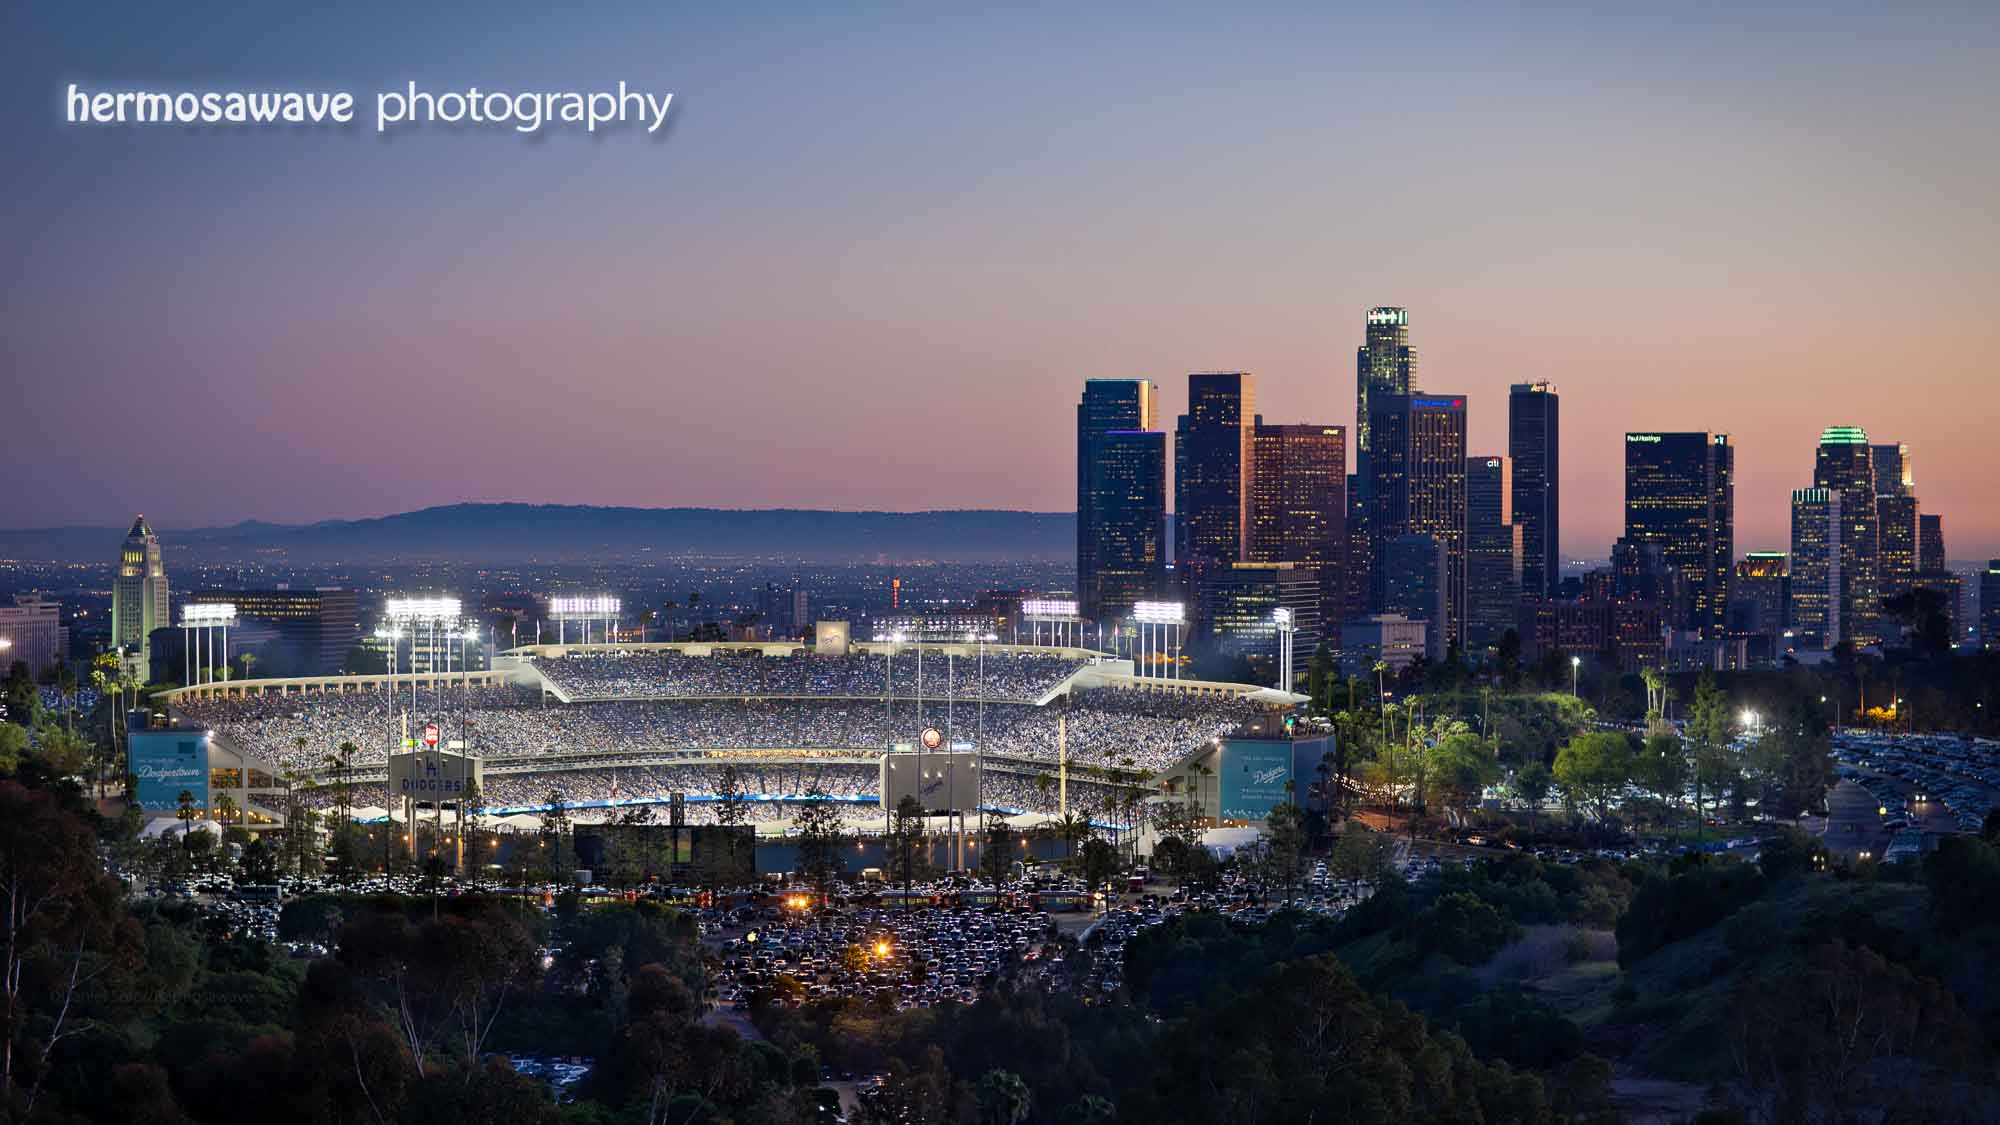 helicopter rides in la with Dodger Stadium Wallpaper Downtown La on Coachella in addition Ariana Grande Austin Mahone Macys Thanksgiving Day Parade Recap besides Helicoptertourspictures further Downtownlosangeleshelicopterviews moreover Dodger Stadium Wallpaper Downtown La.